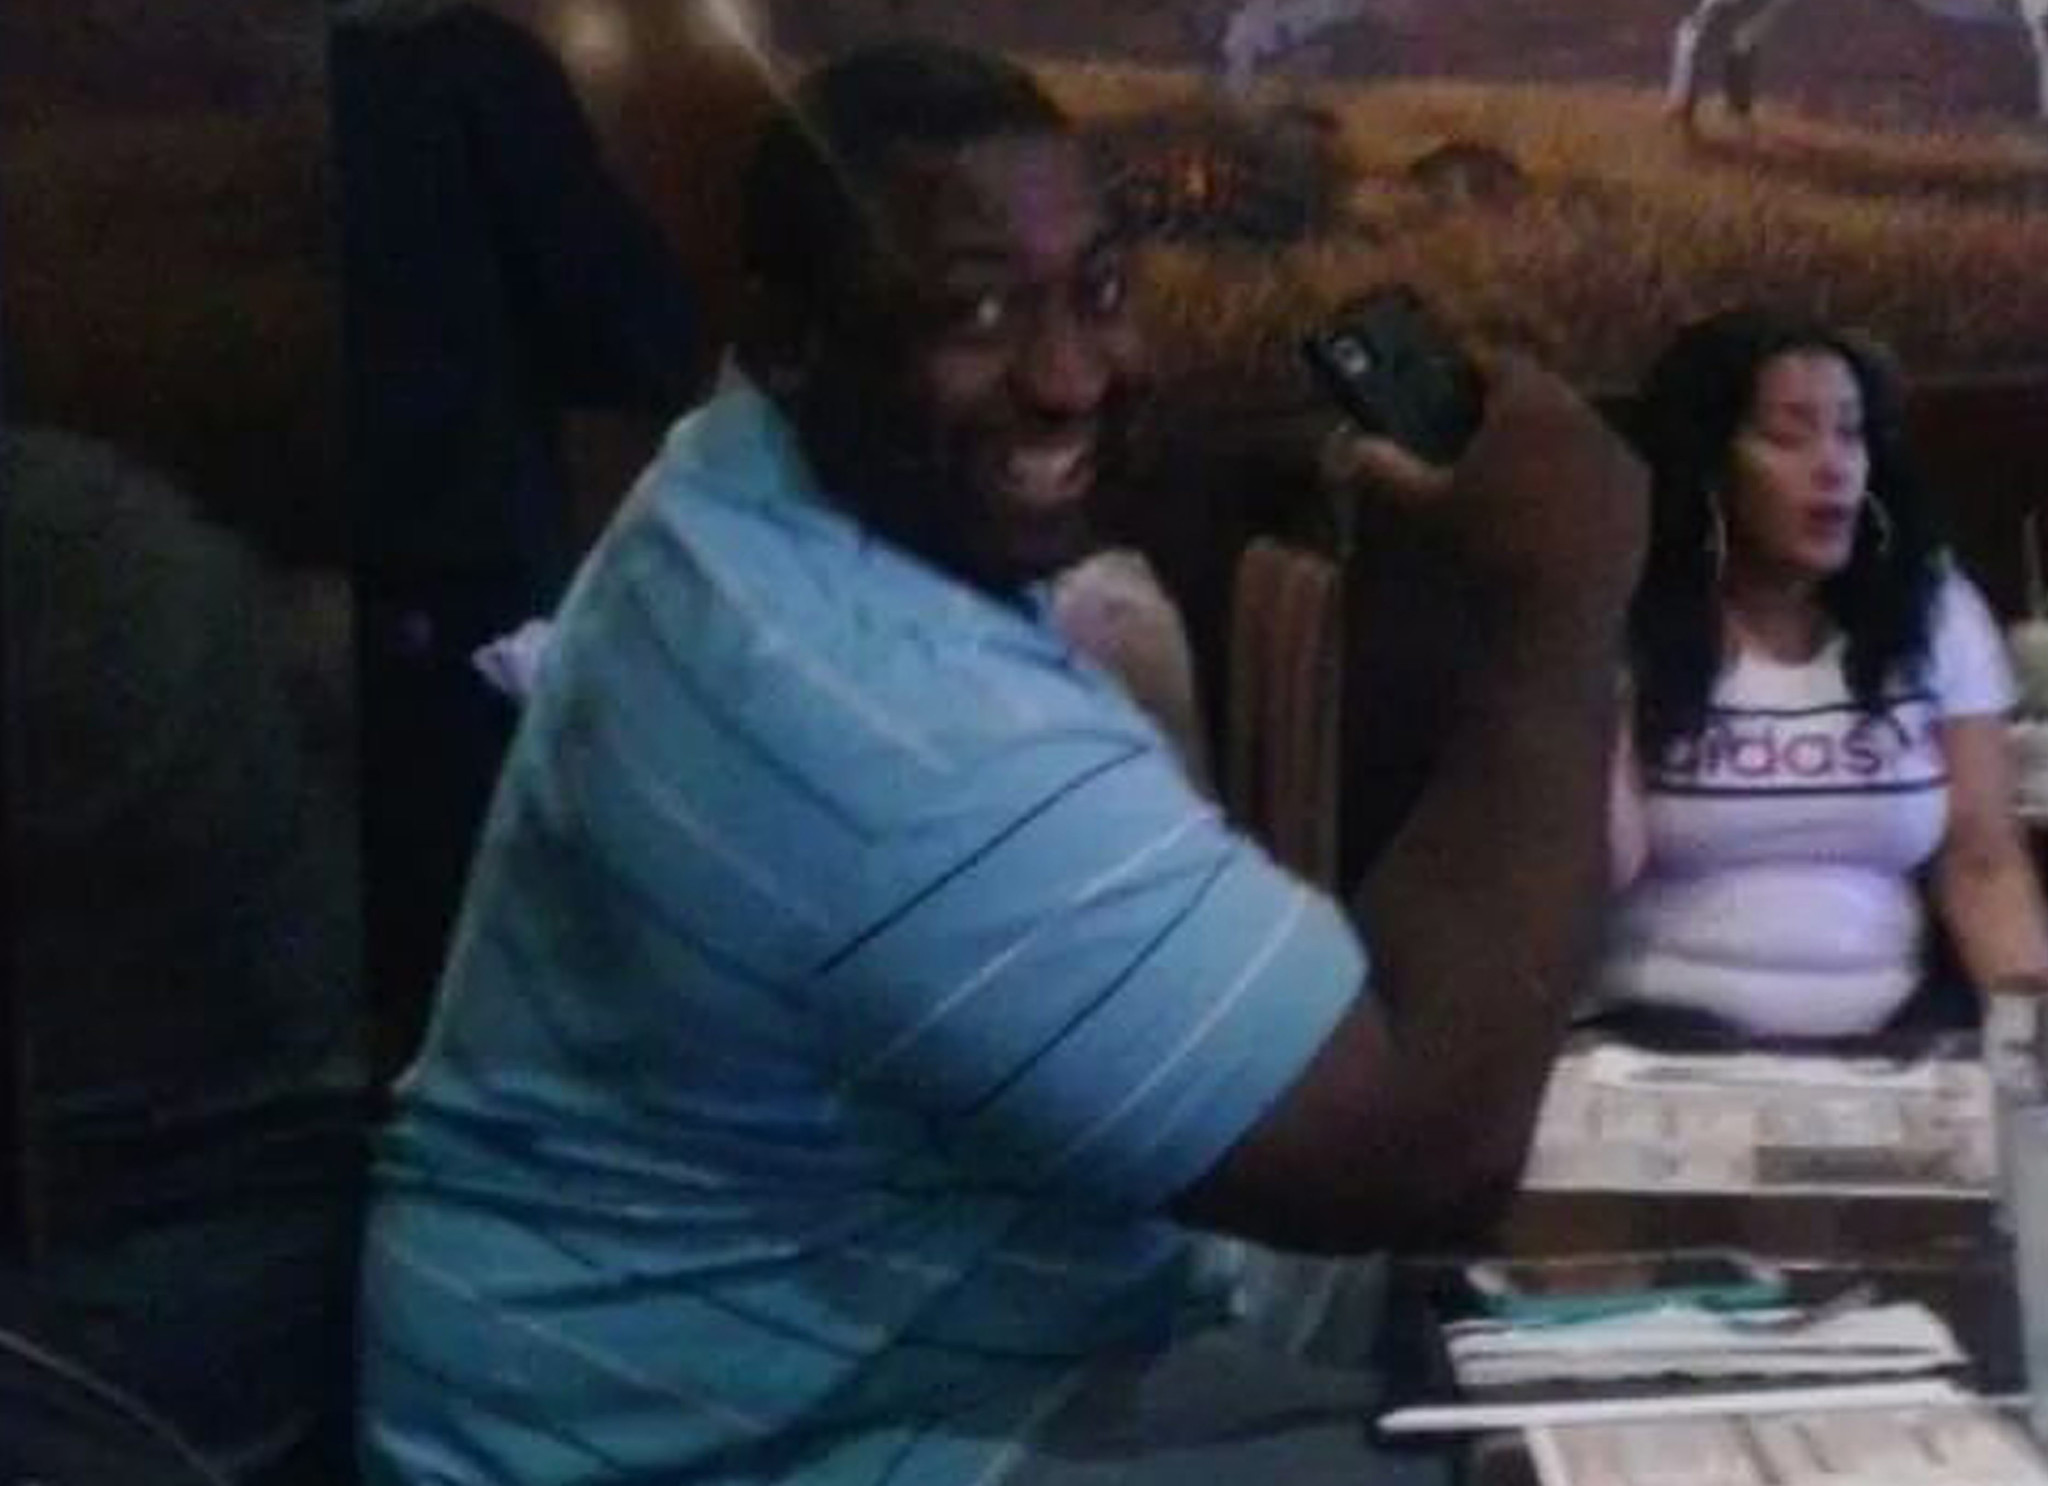 Four years after police chokehold victim Eric Garner died, there's a teddy bear and barely justice | New York Daily News